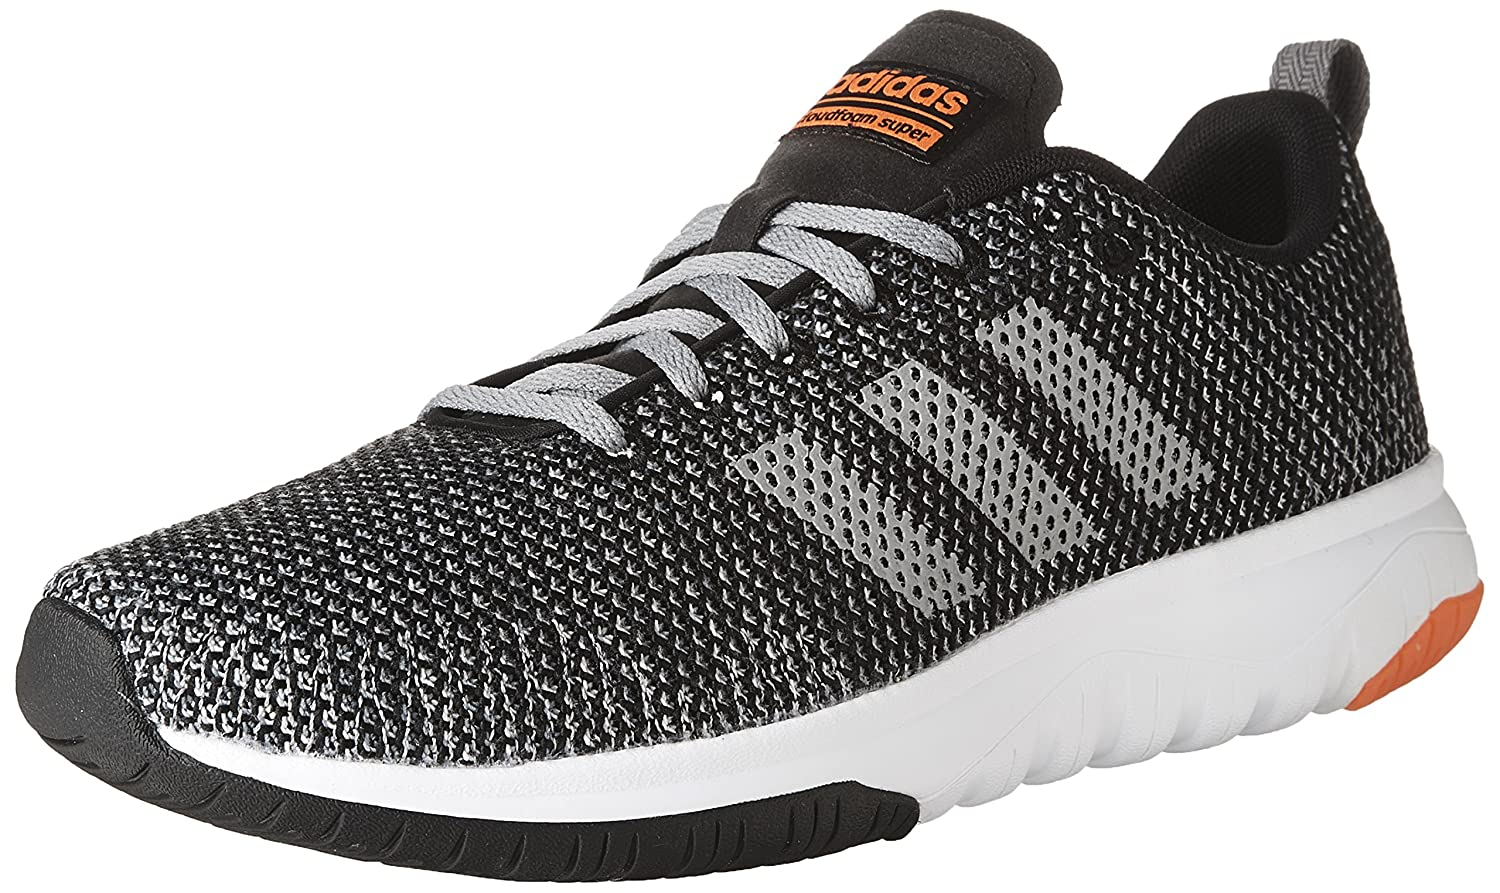 adidas Men's Cf Superflex Running Shoe B01N48HI3Y 10.5 D(M) US|Black/Grey Three/Solar Red